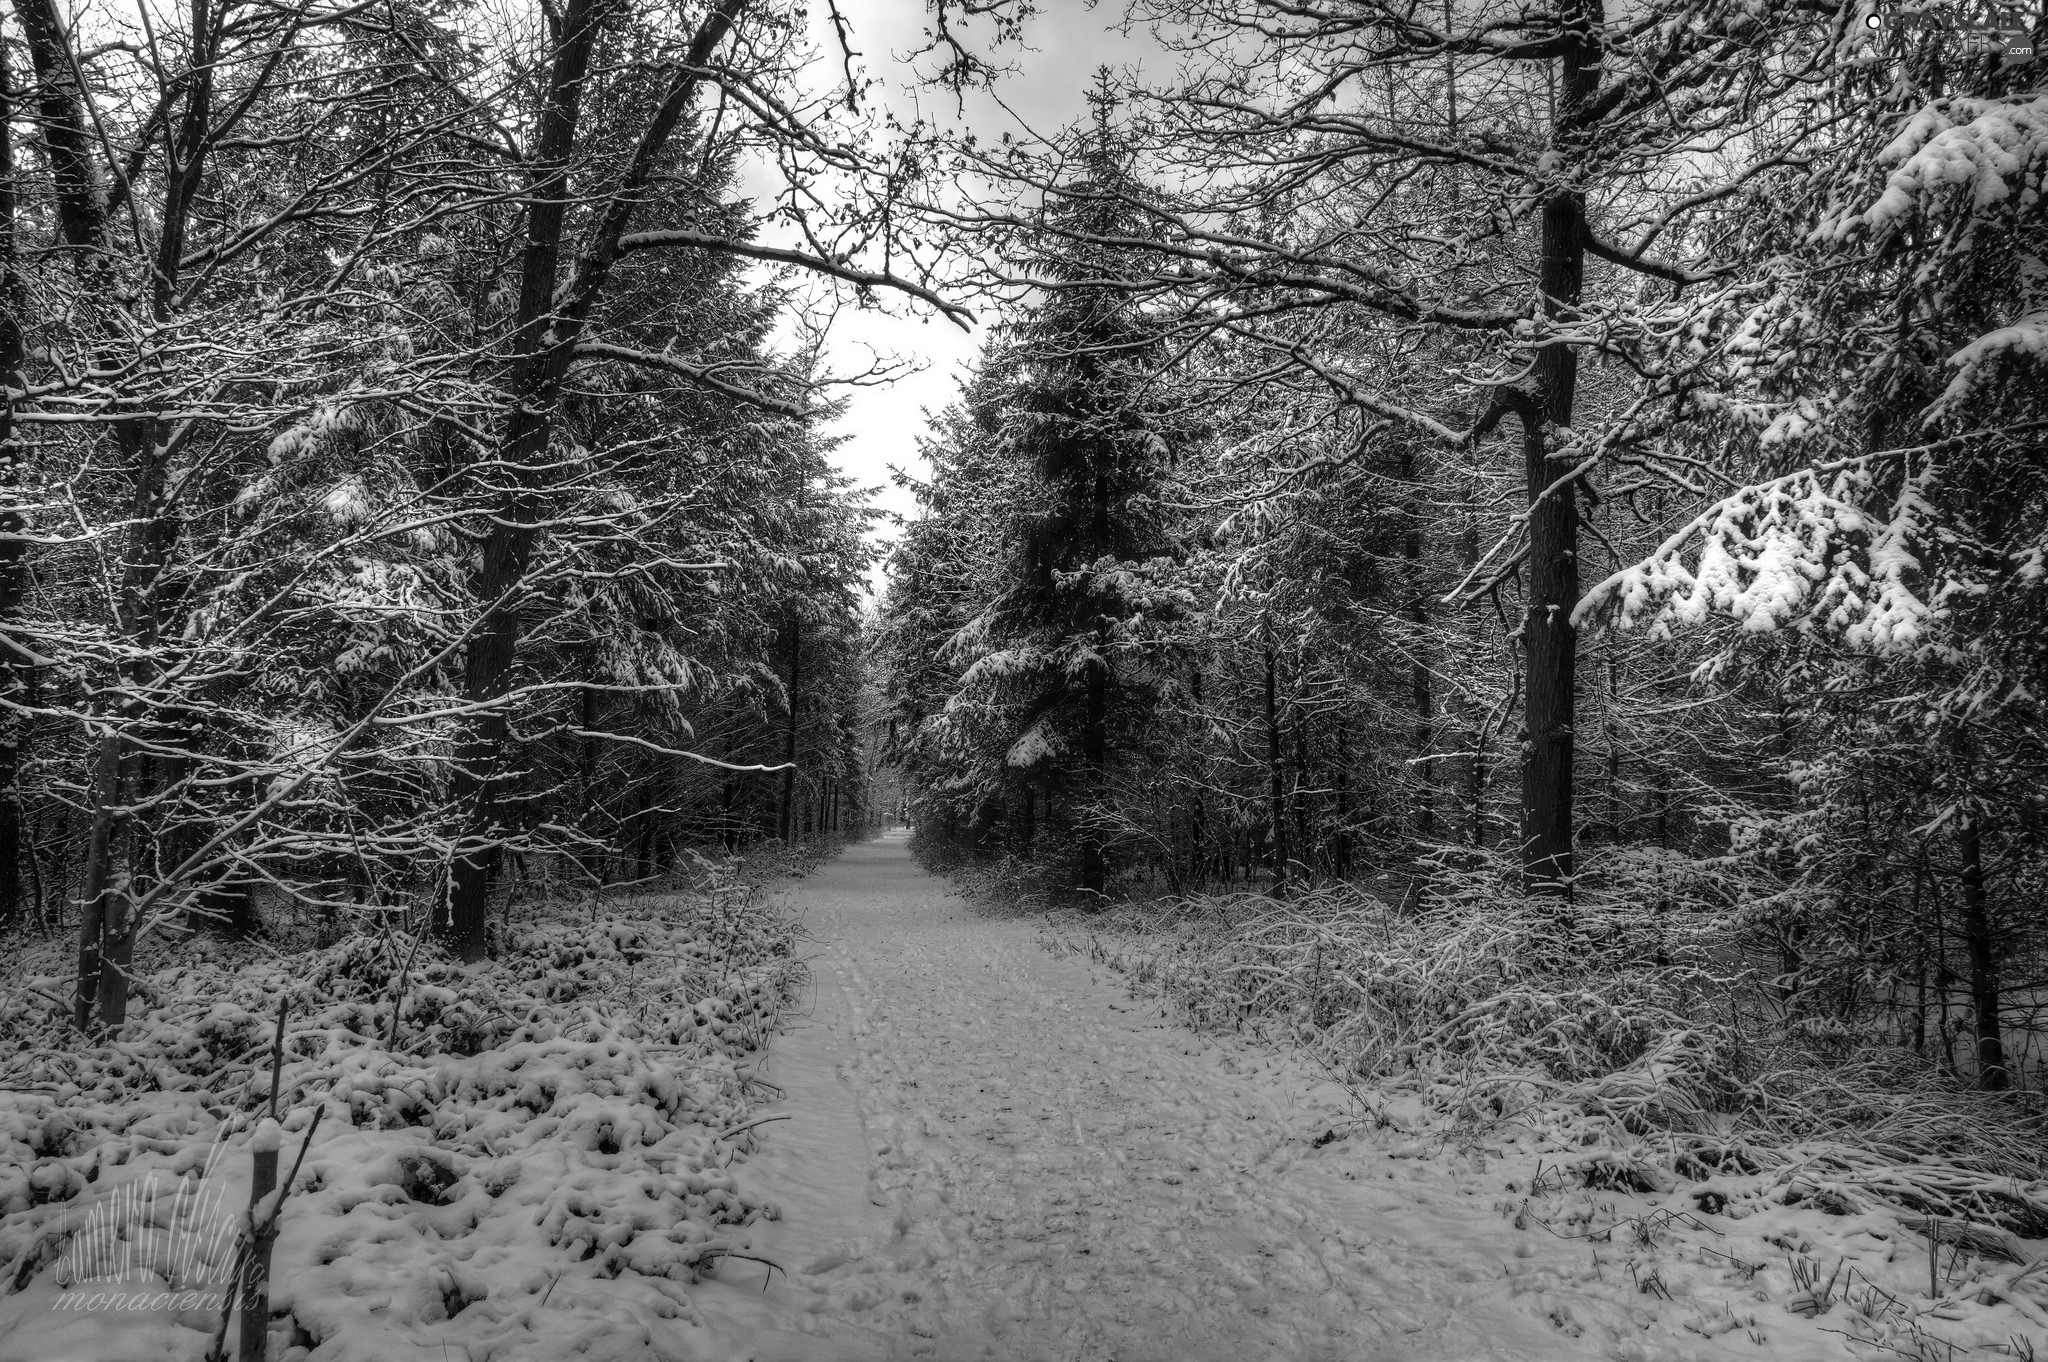 trees, forest, winter, snow, viewes, Way